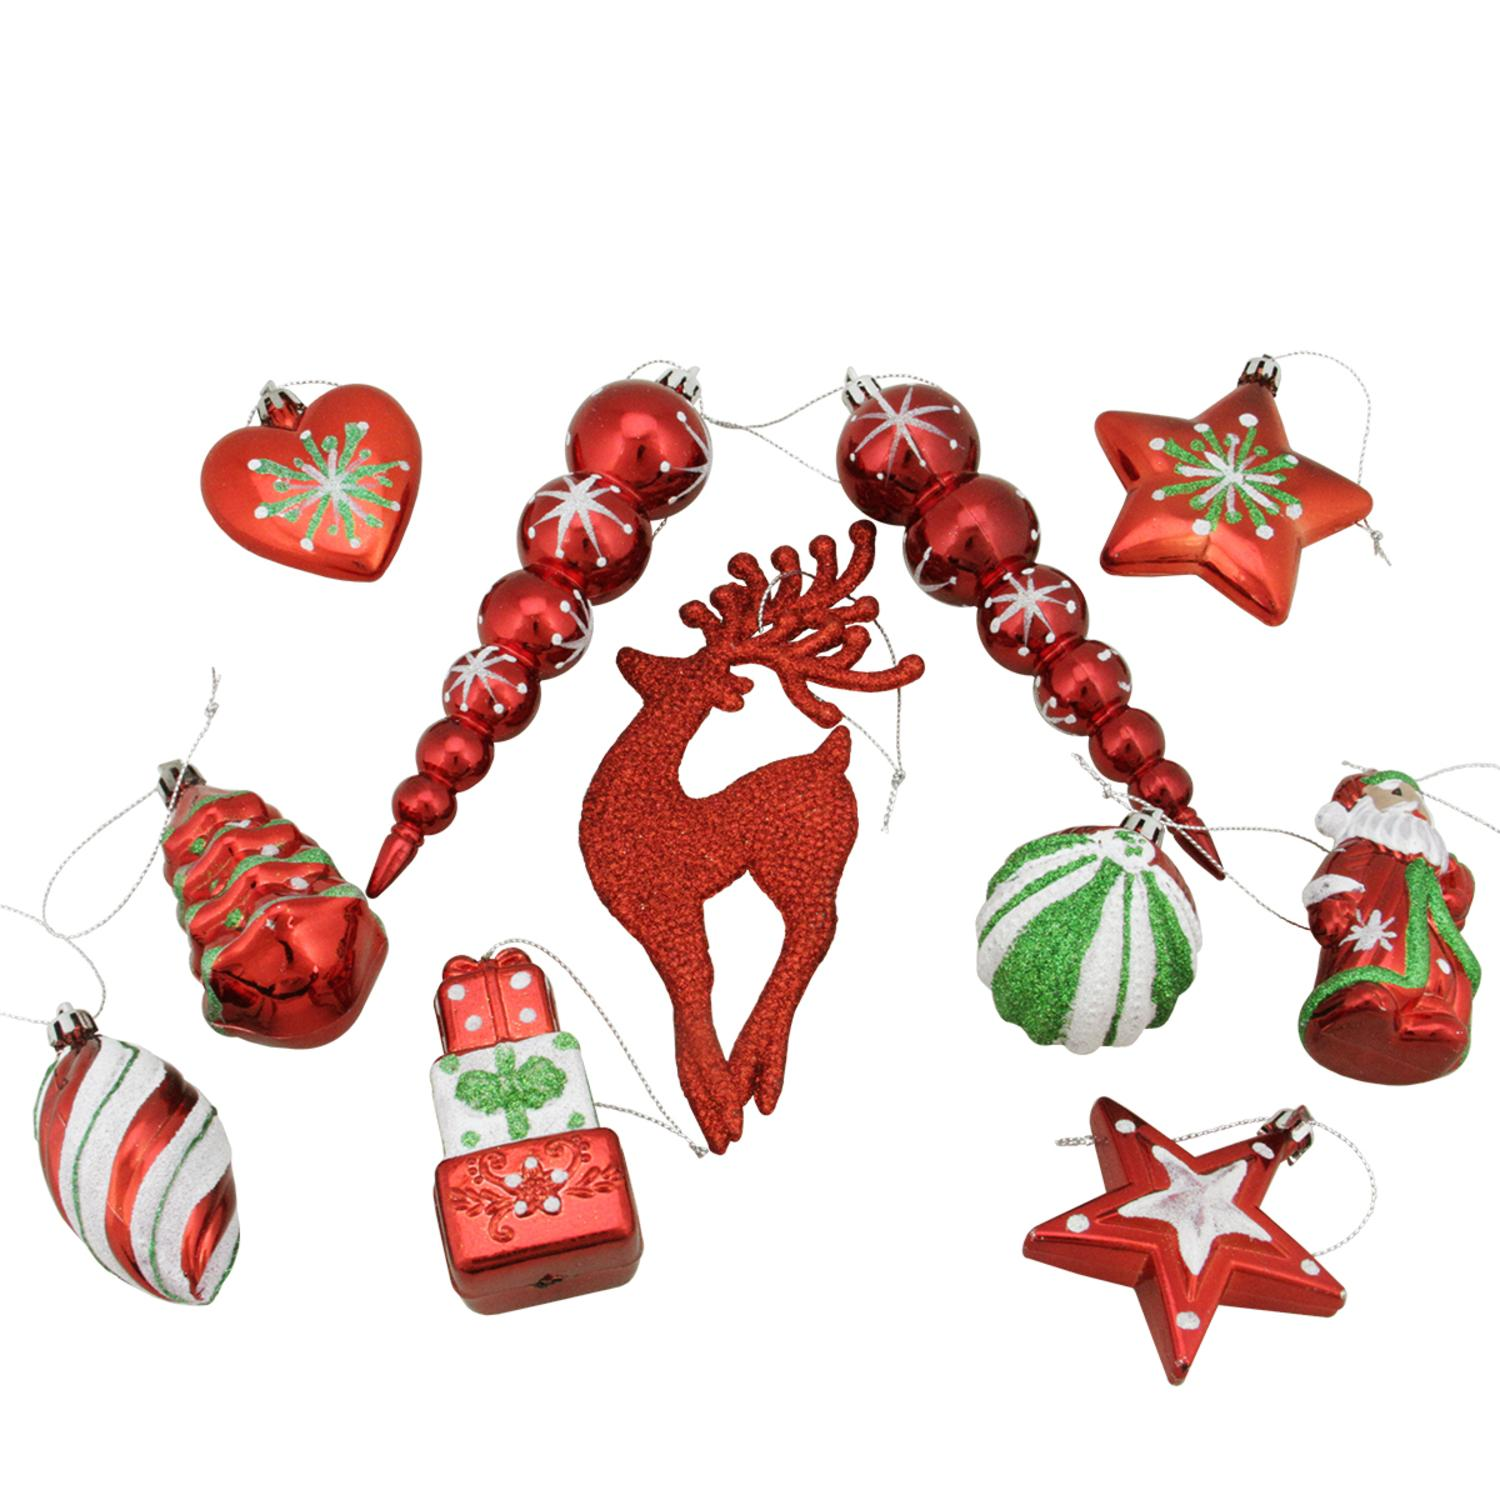 11ct Shiny Red HOLIDAY Themed Glittered Shatterproof Christmas Ornaments